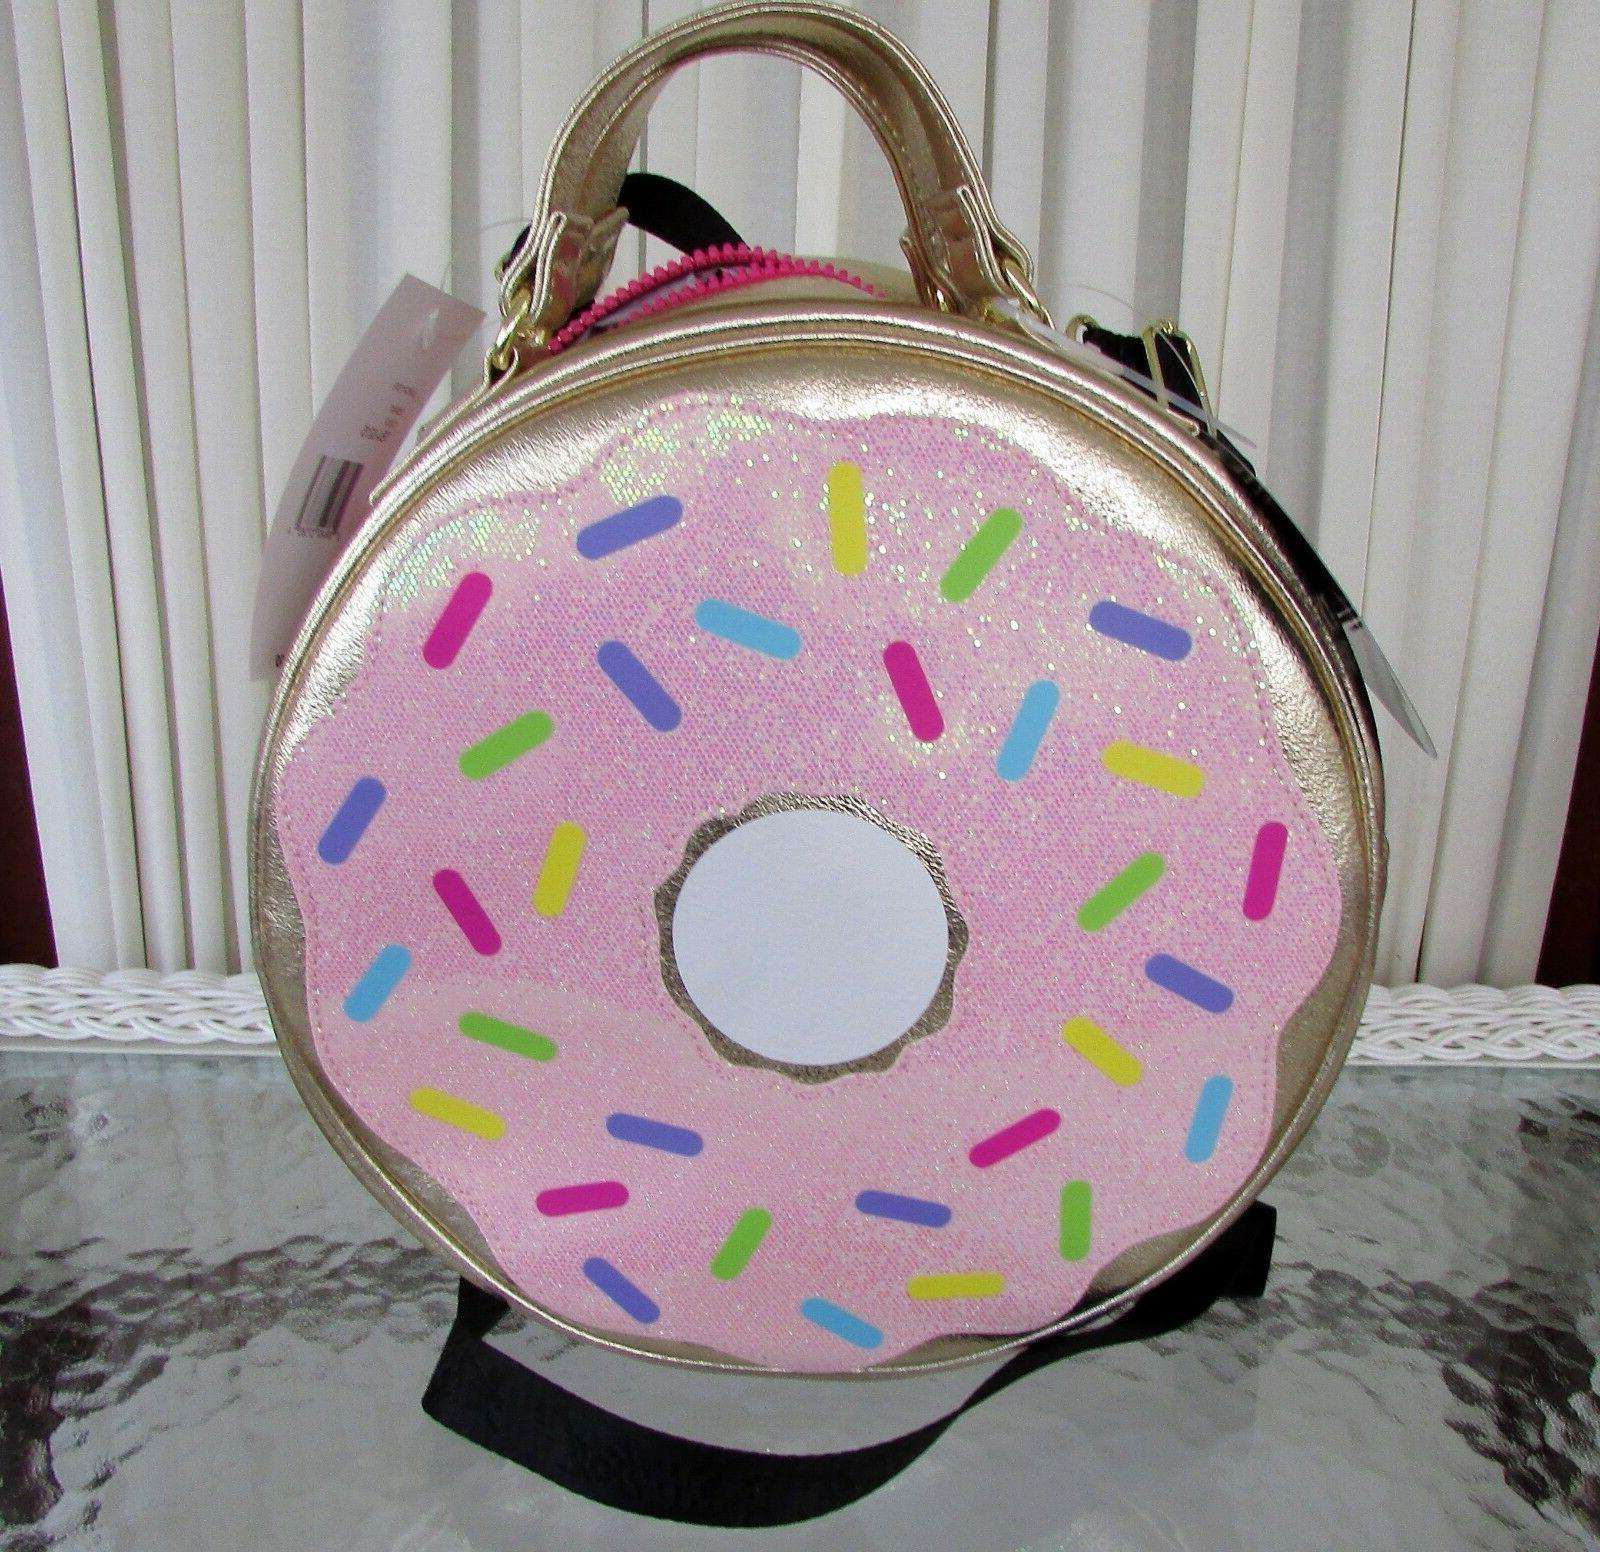 Betsey Johnson Kitsch Donut Large Insulated Lunch Tote Bag C